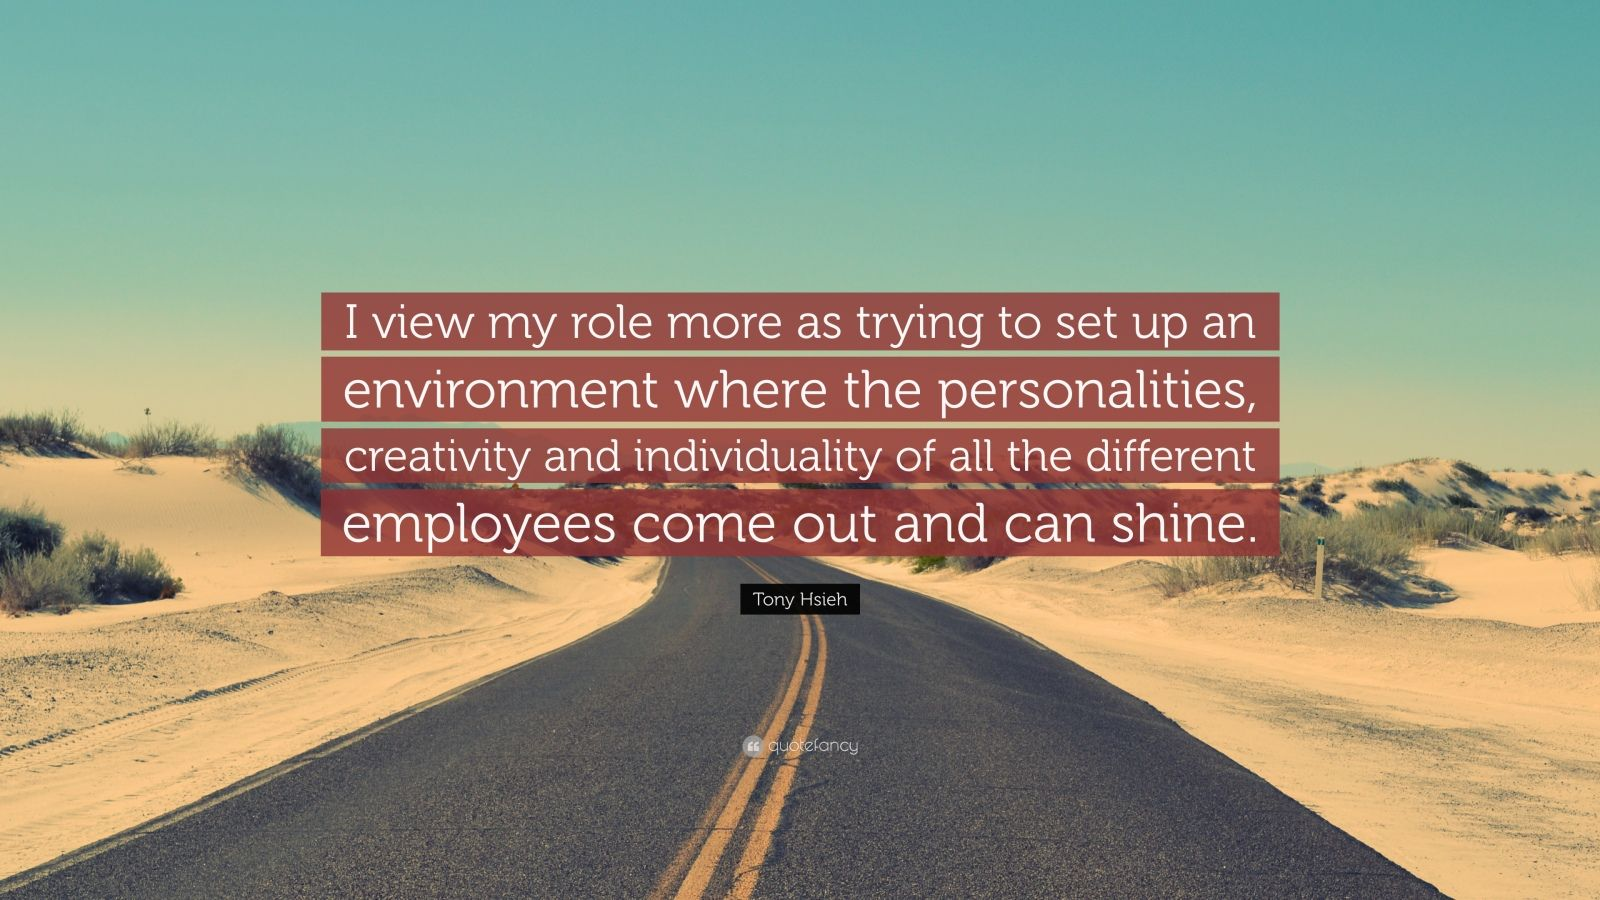 """Tony Hsieh Quote: """"I view my role more as trying to set up an environment where the personalities, creativity and individuality of all the different employees come out and can shine."""""""